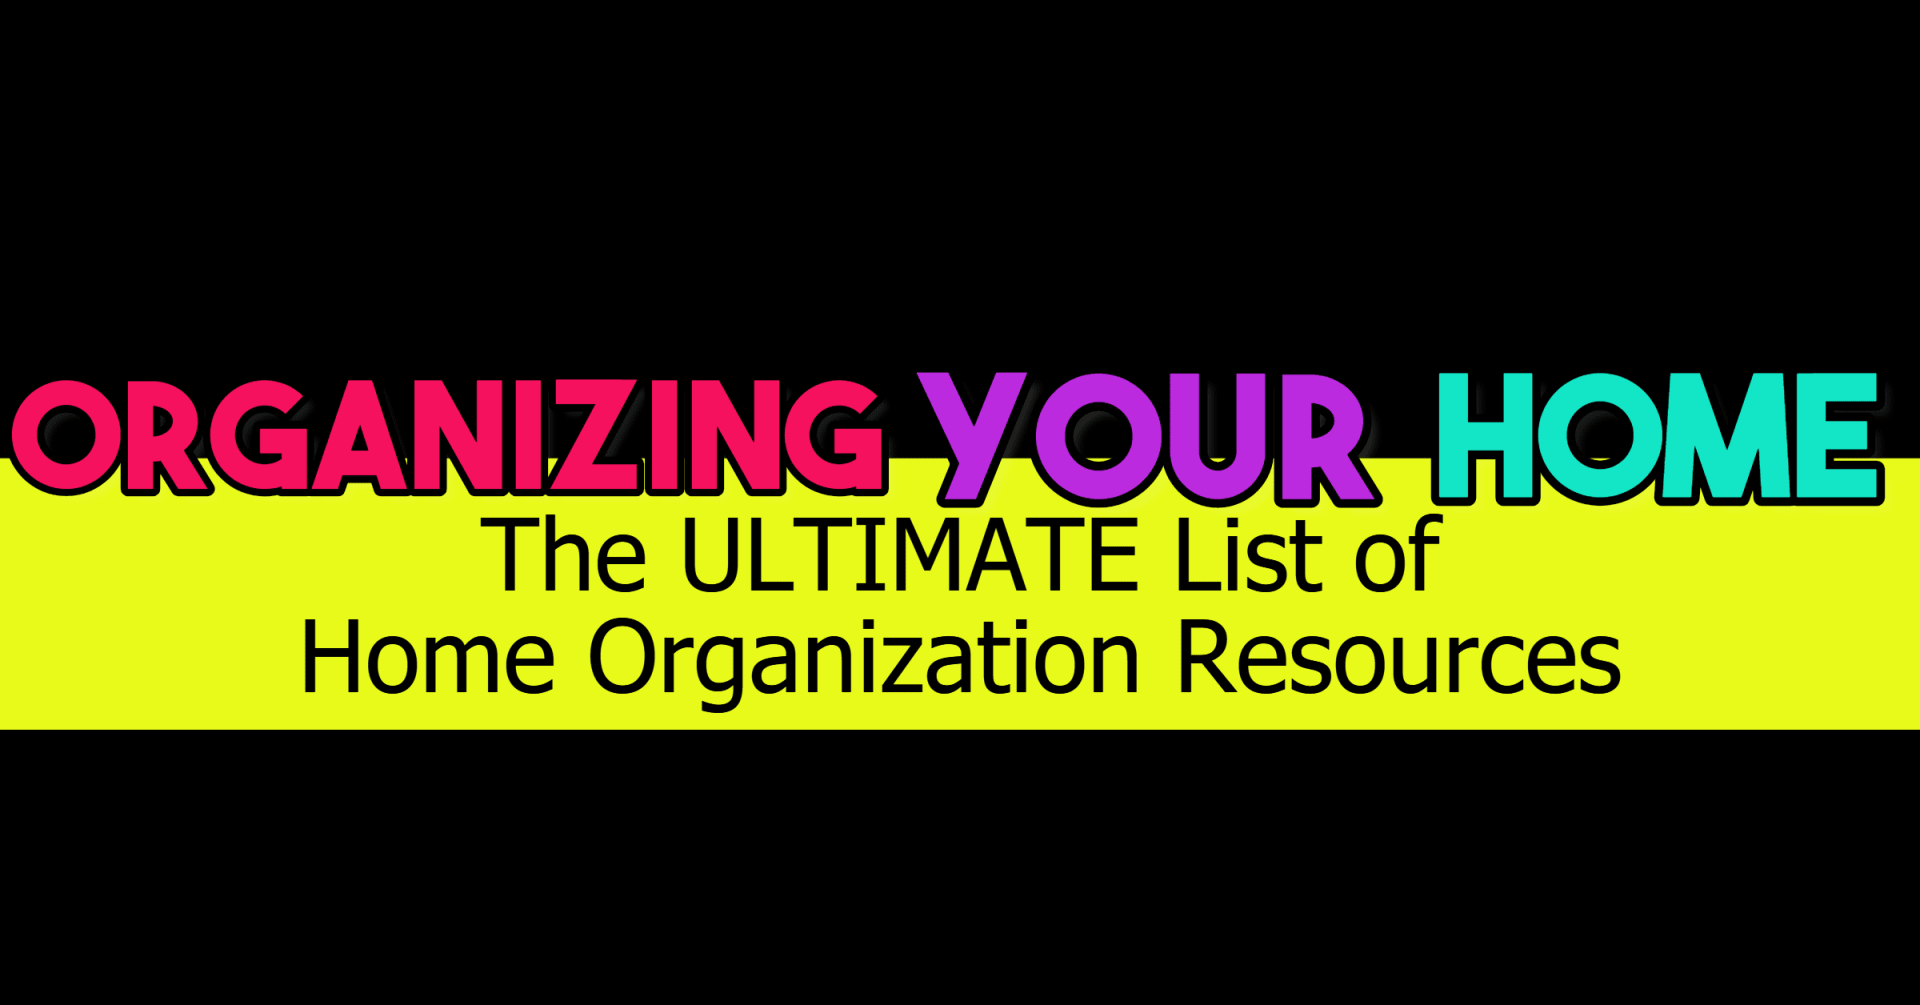 Organizing your home - the ULTIMATE list of home organization resources